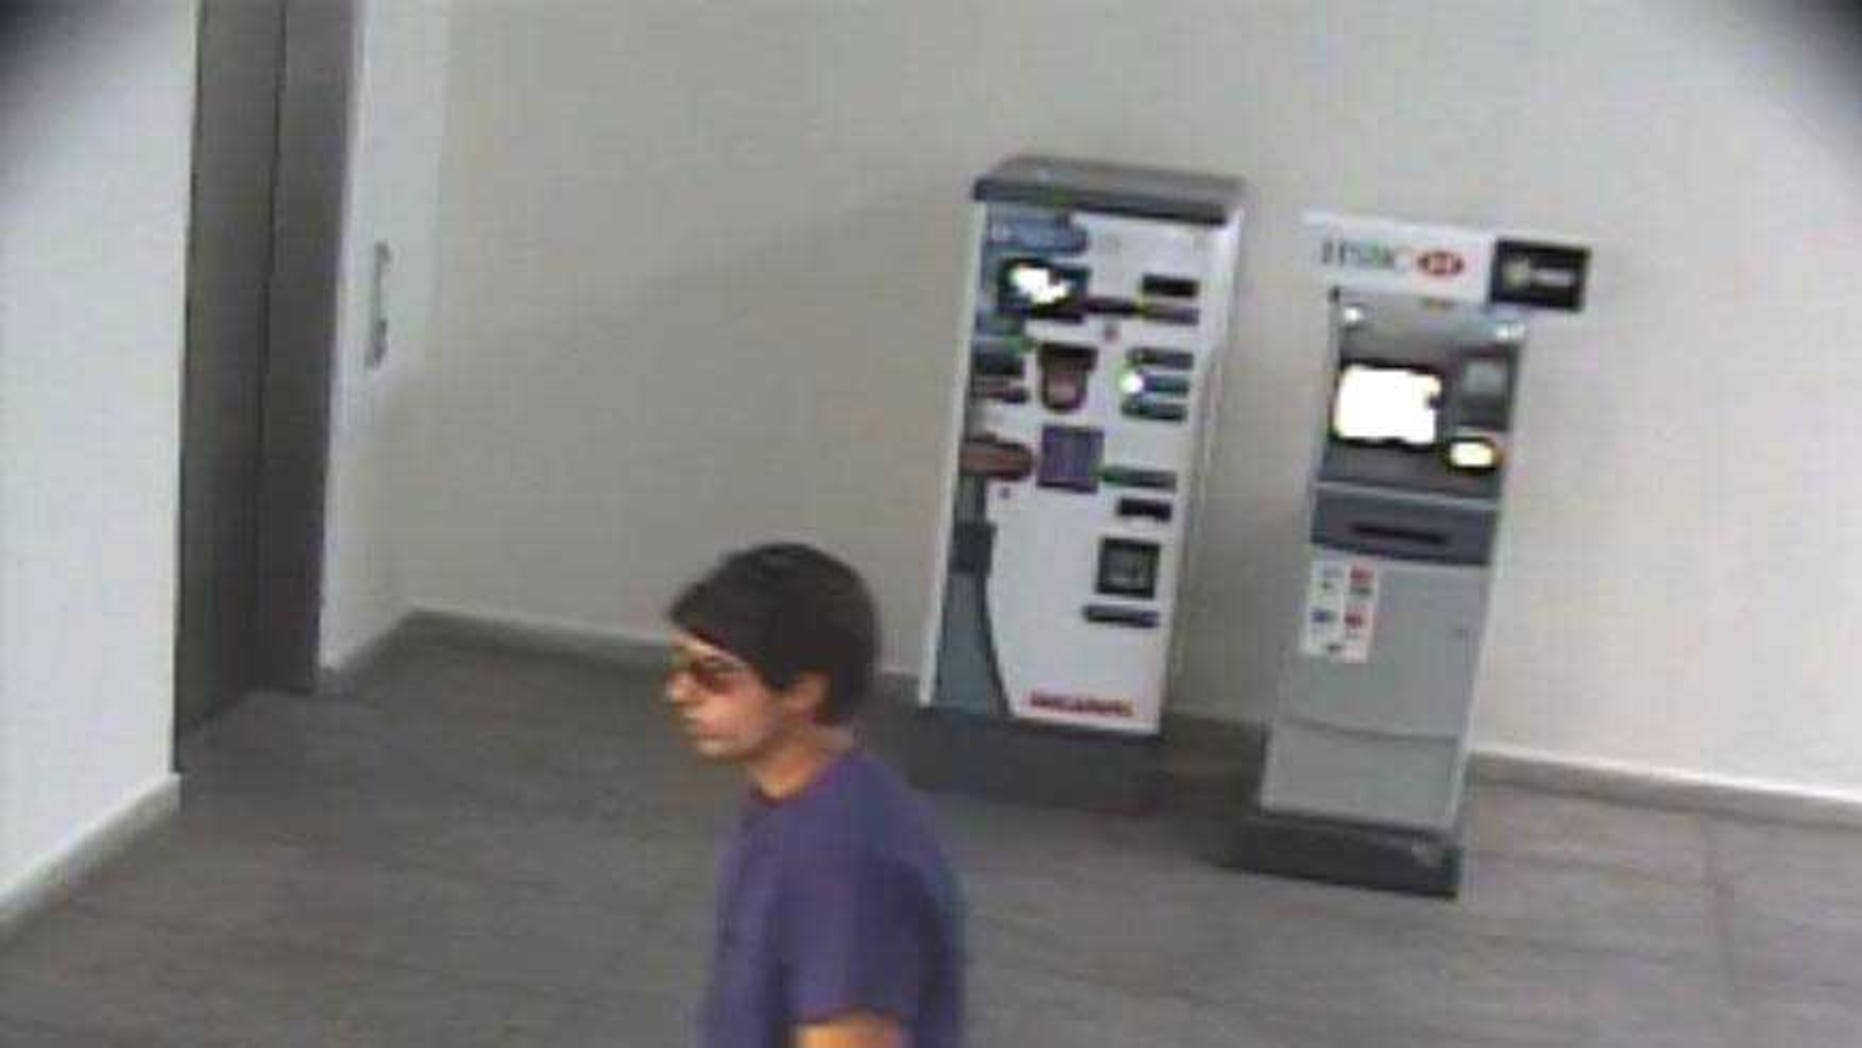 One of the surveillance photos provided by the U.S. Attorney's Office.